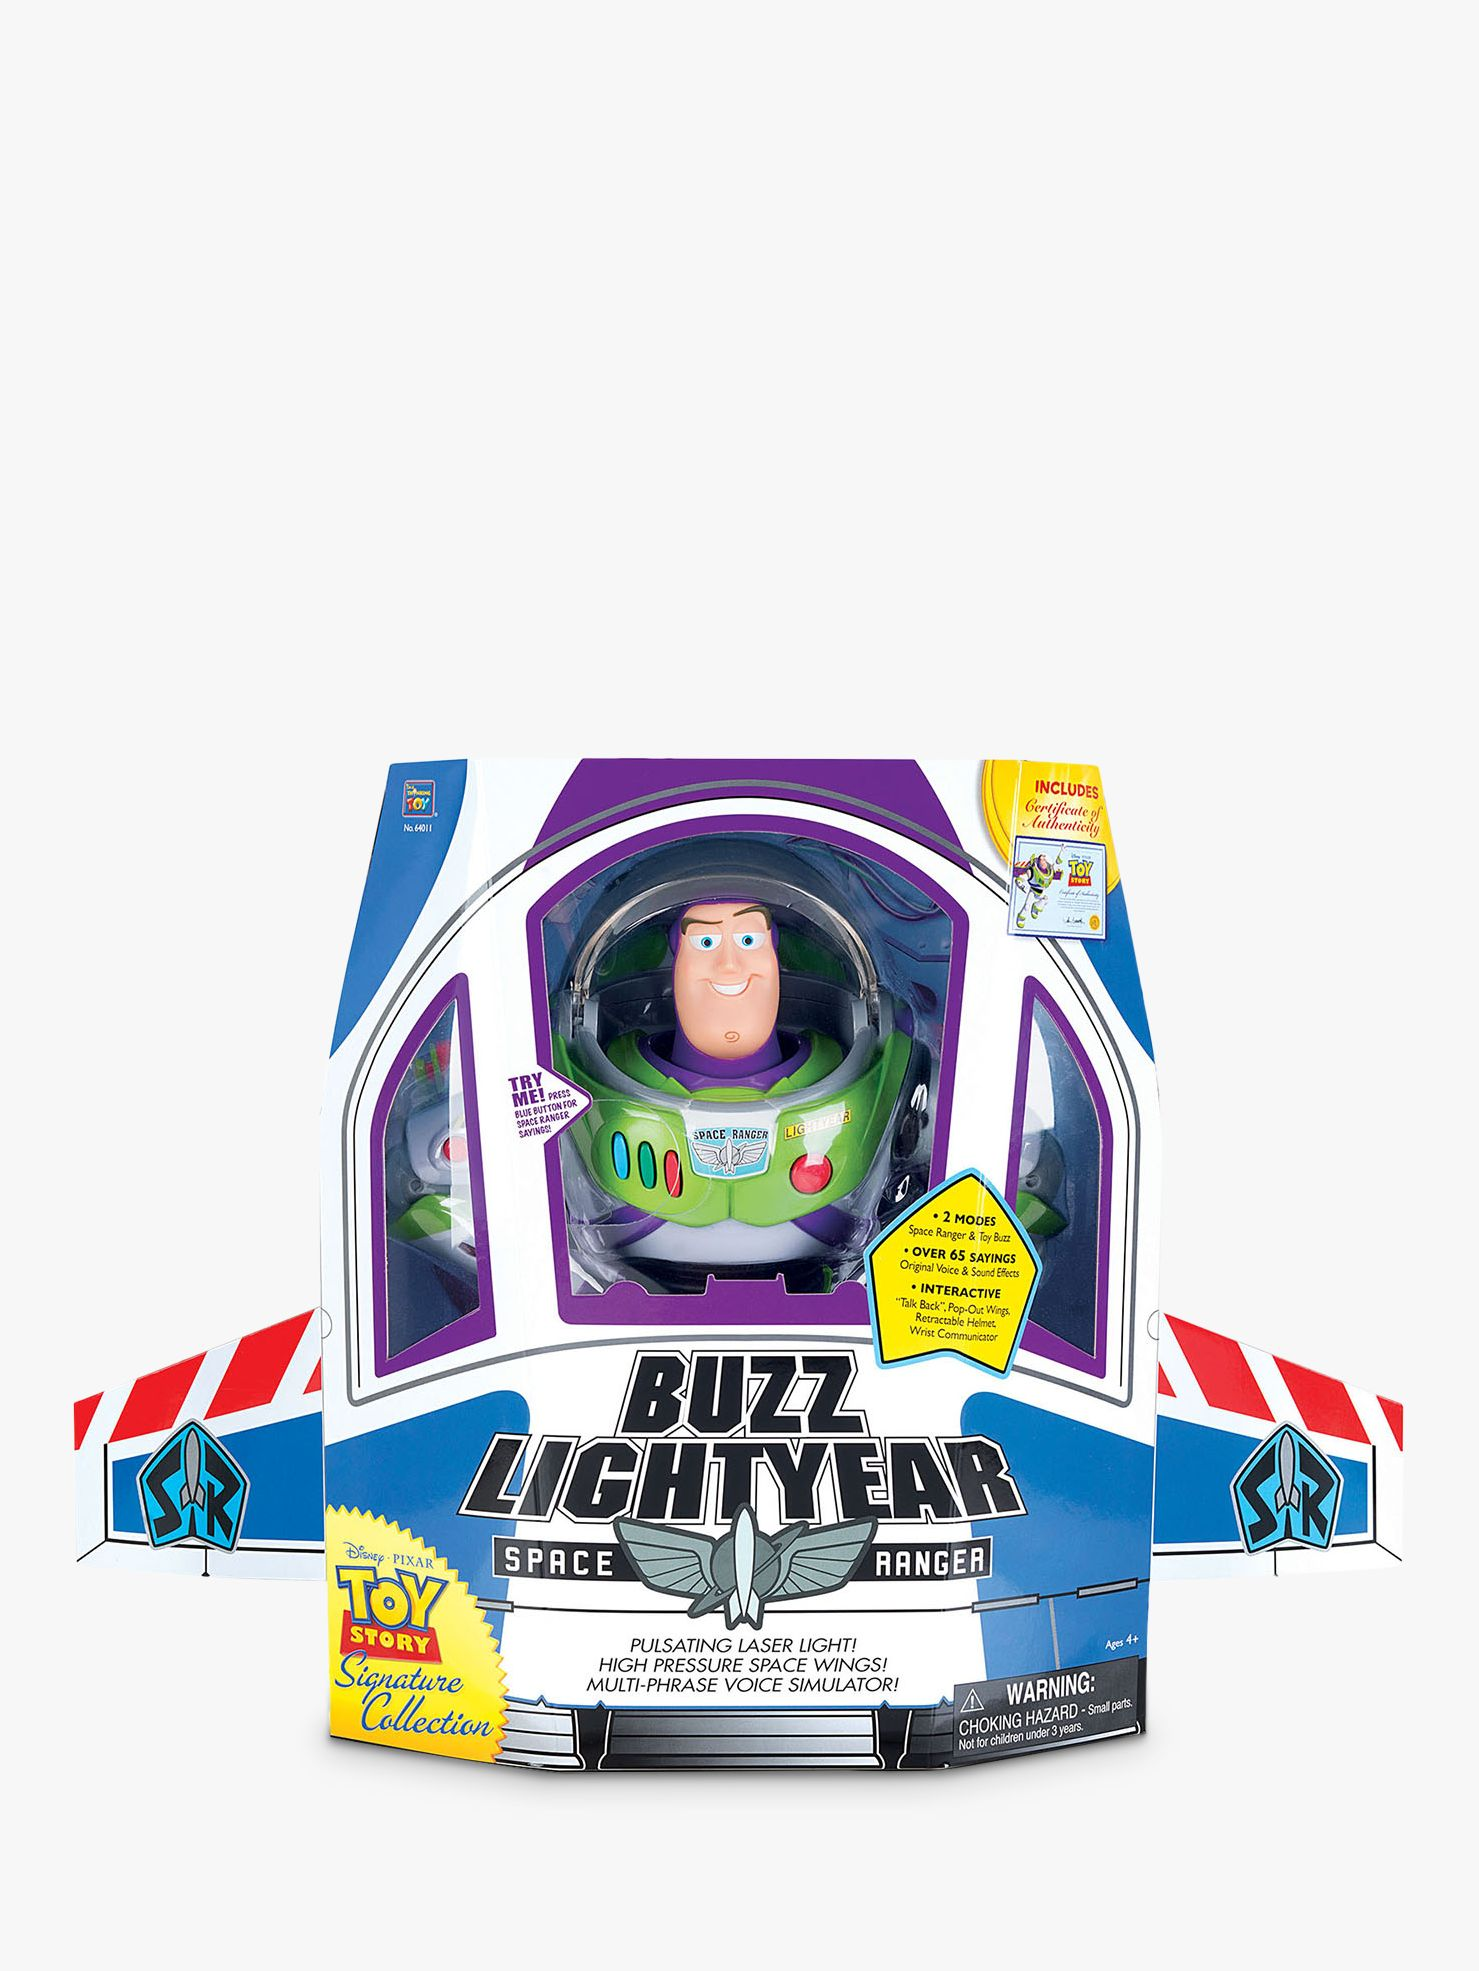 Disney Disney Toy Story Signature Collection Buzz Lightyear Space Ranger Action Figure